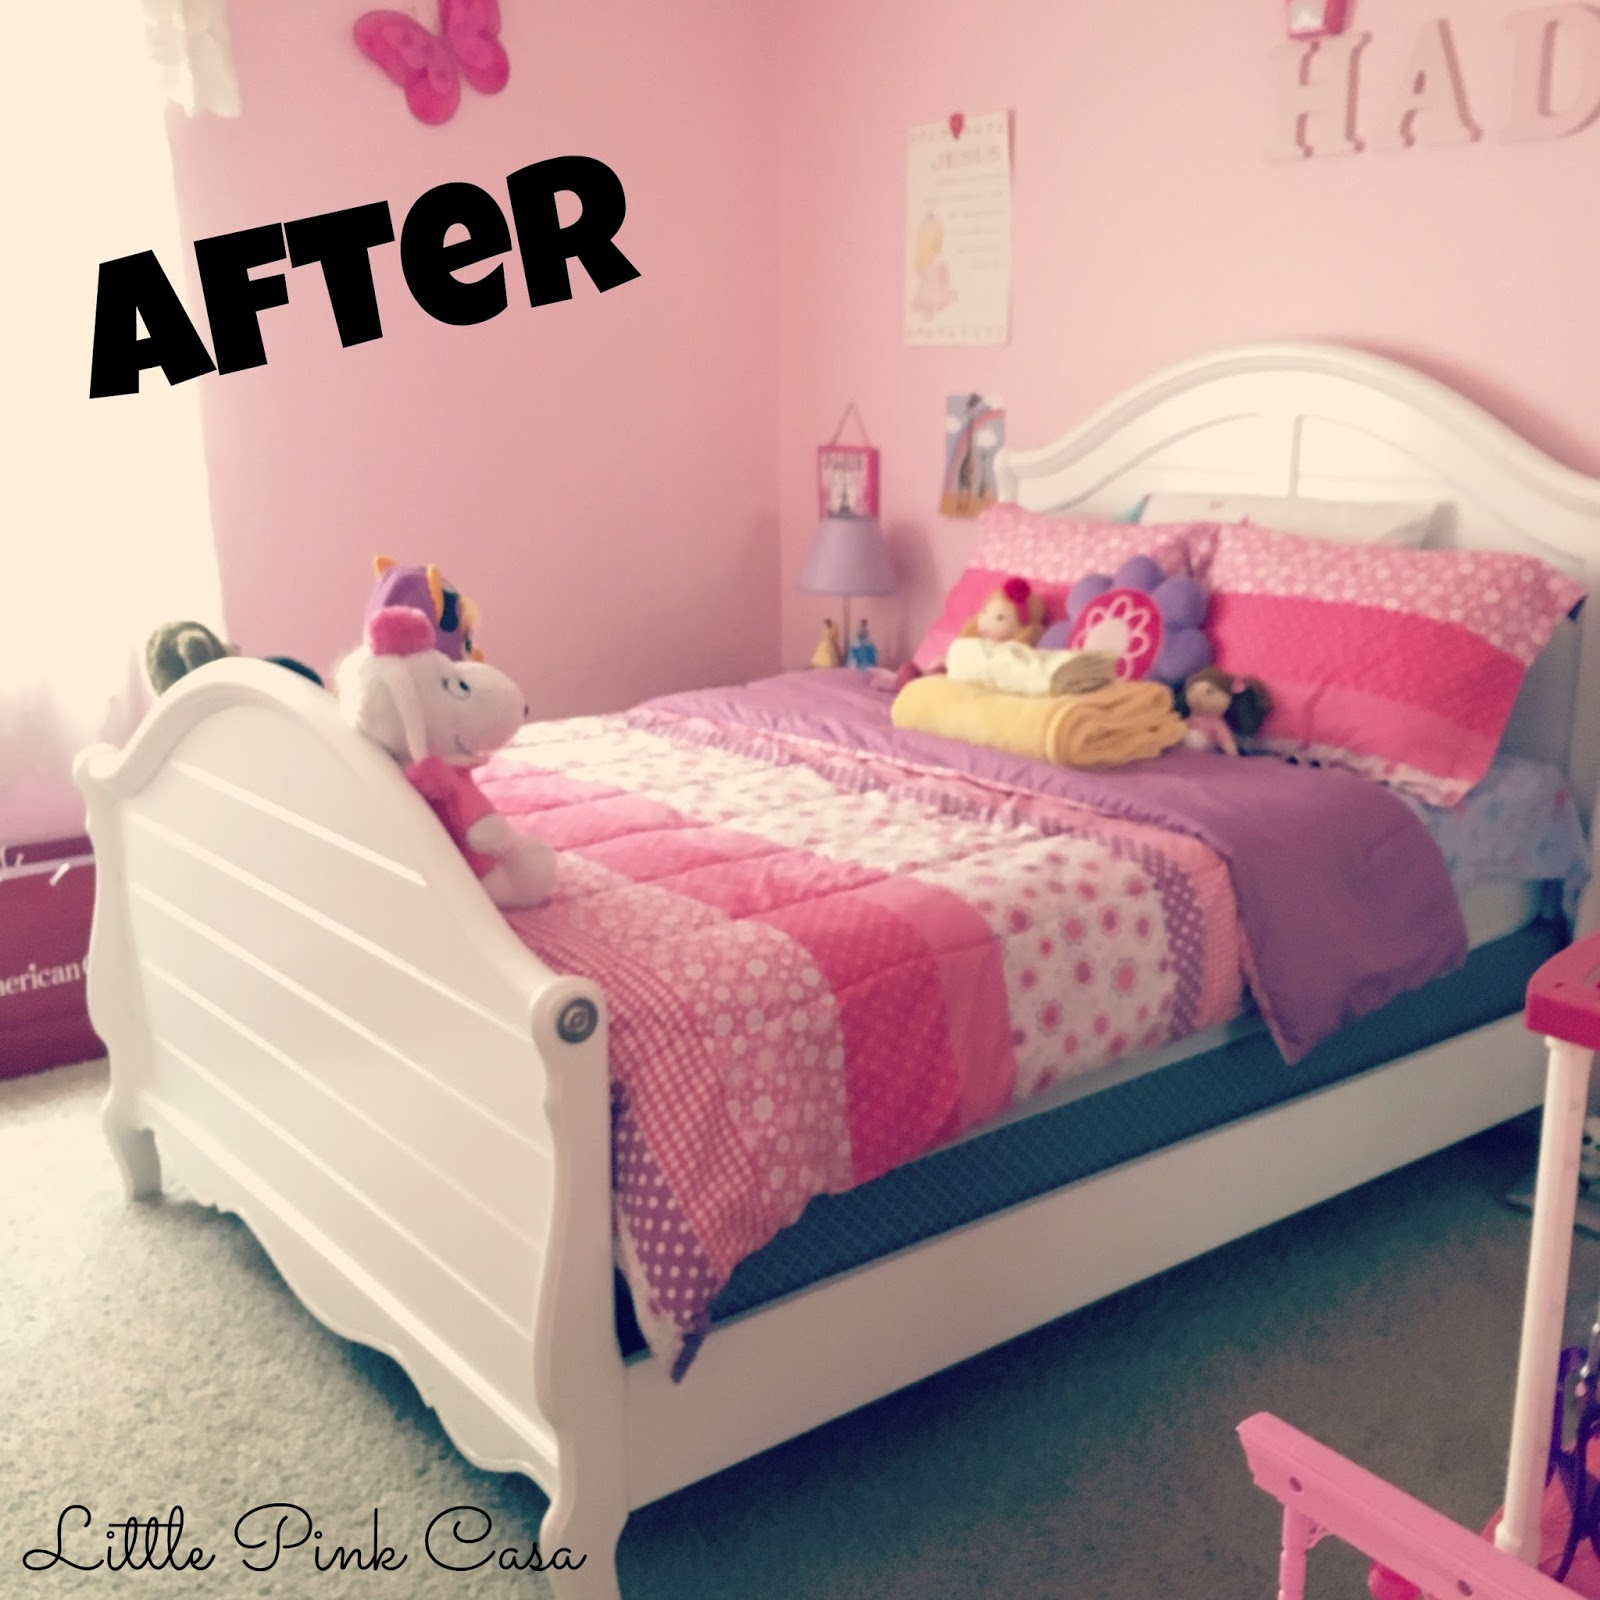 Big Girl Beds Hadaras New Big Girl Bed Little Pink Casa